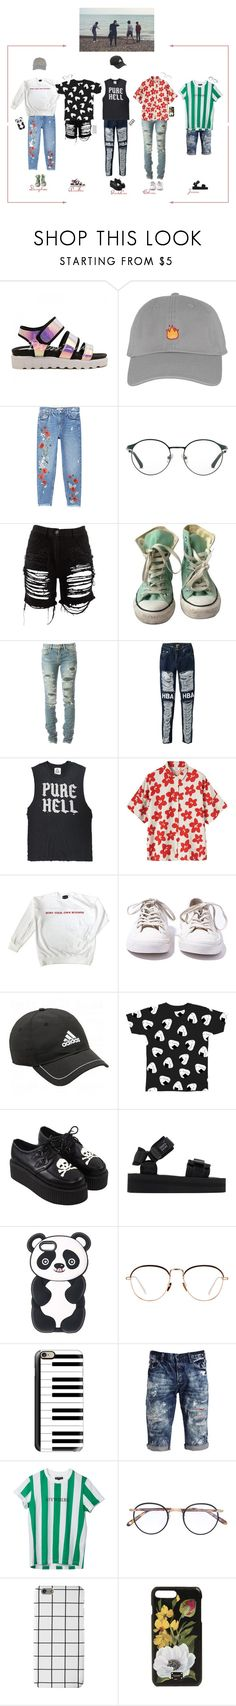 """""""PTX """" Beach V Live """" w/ S'nD"""" by purrfectas ❤ liked on Polyvore featuring MANGO, 3.1 Phillip Lim, Maison Margiela, Converse, Yves Saint Laurent, Hood by Air, UNIF, Toast, adidas and Suicoke"""